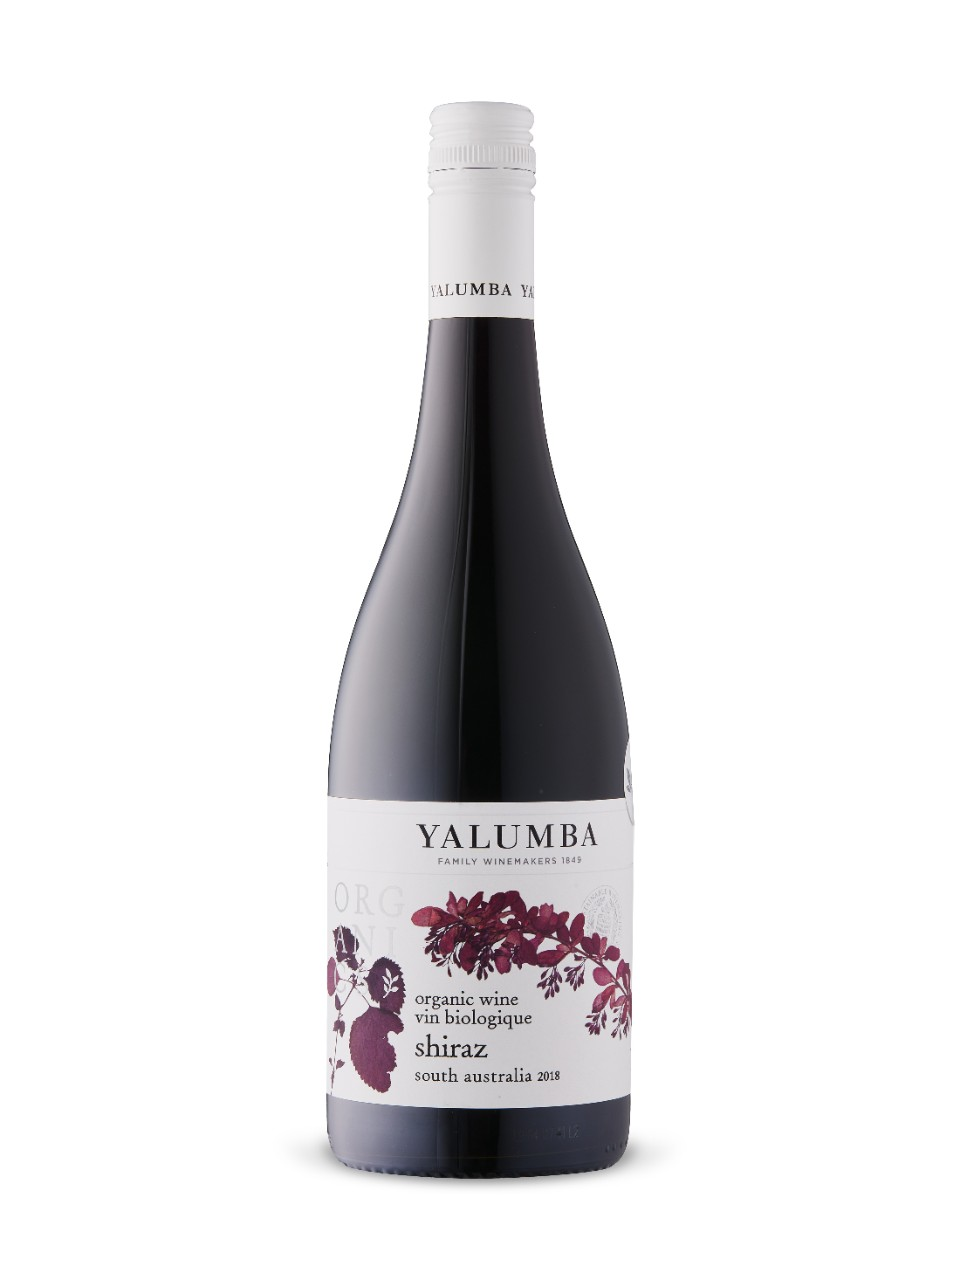 Yalumba Organic Shiraz 2018 from LCBO